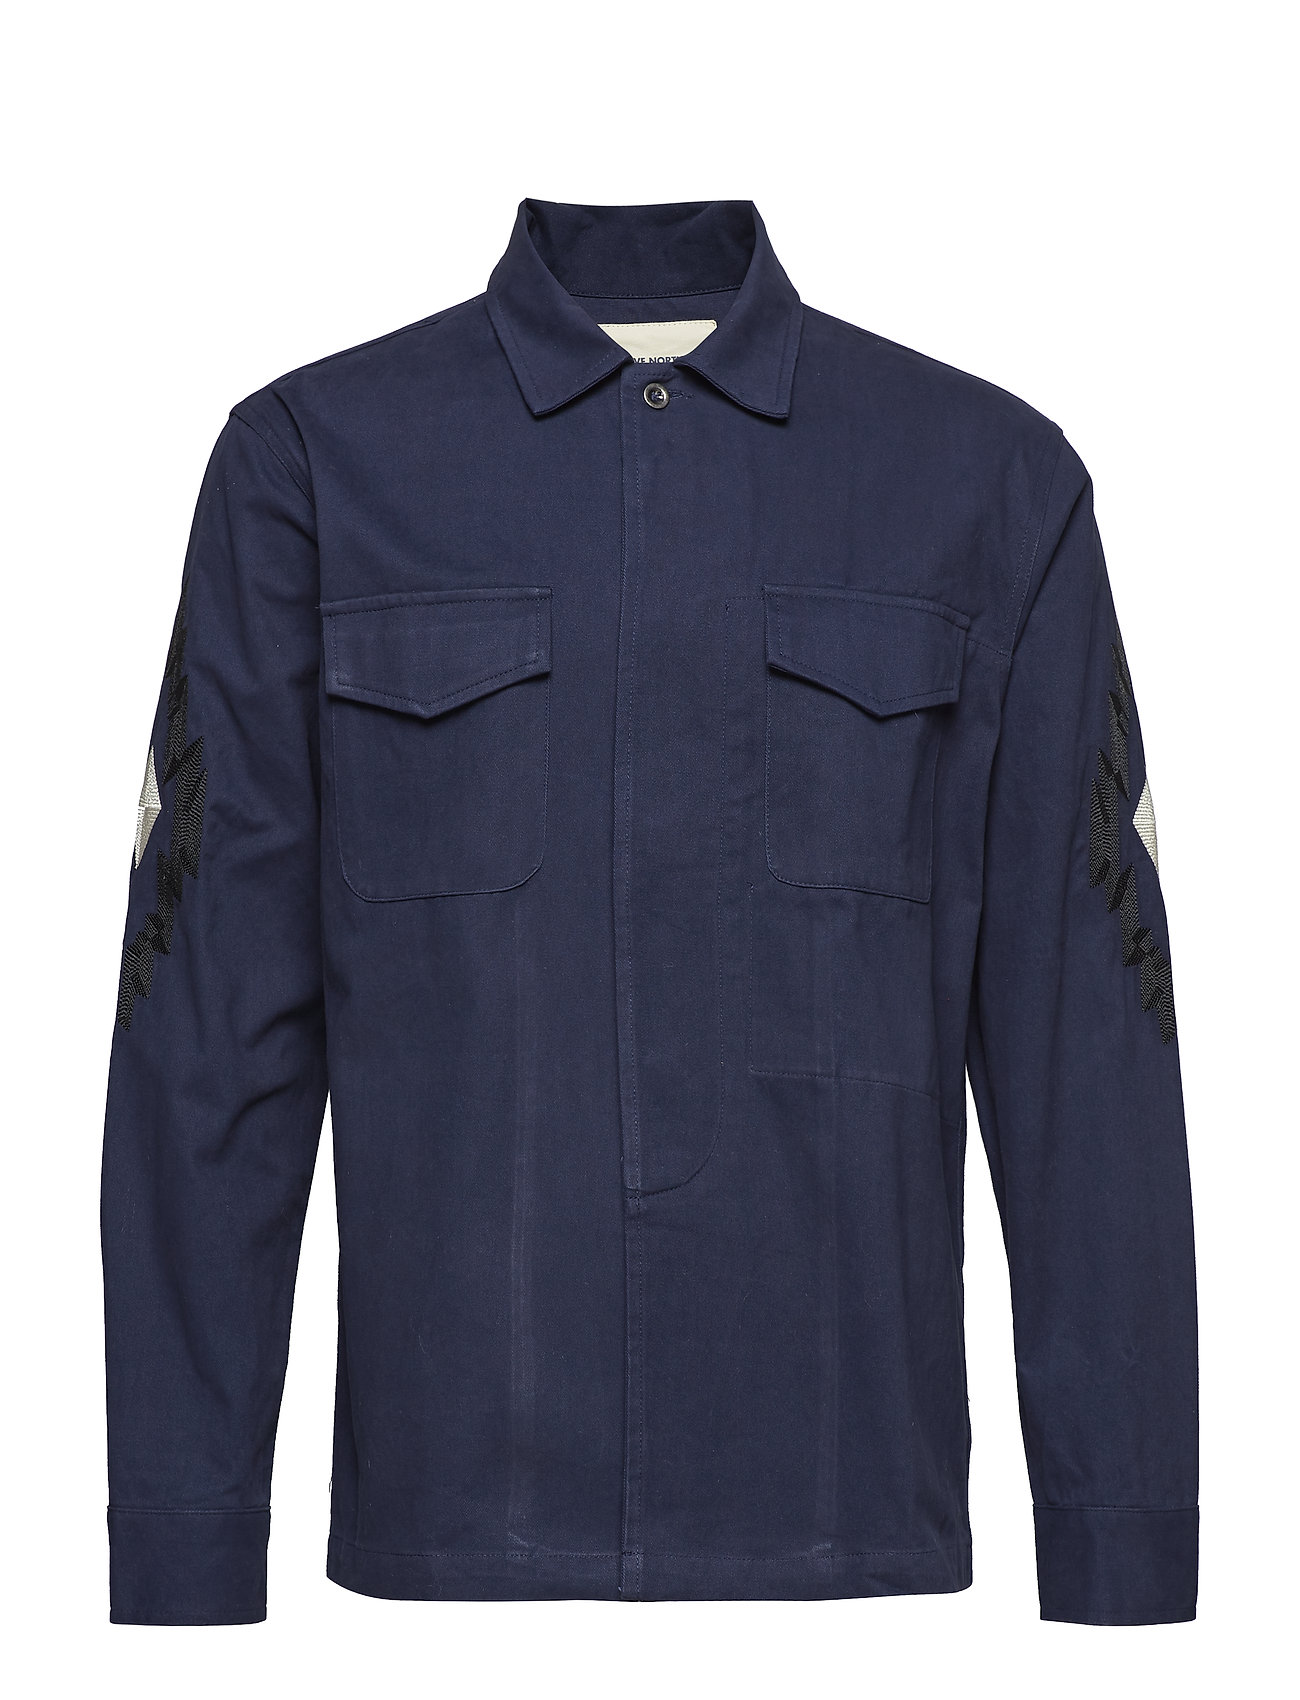 Native North FIELD THISTLE OVERSHIRT - NAVY